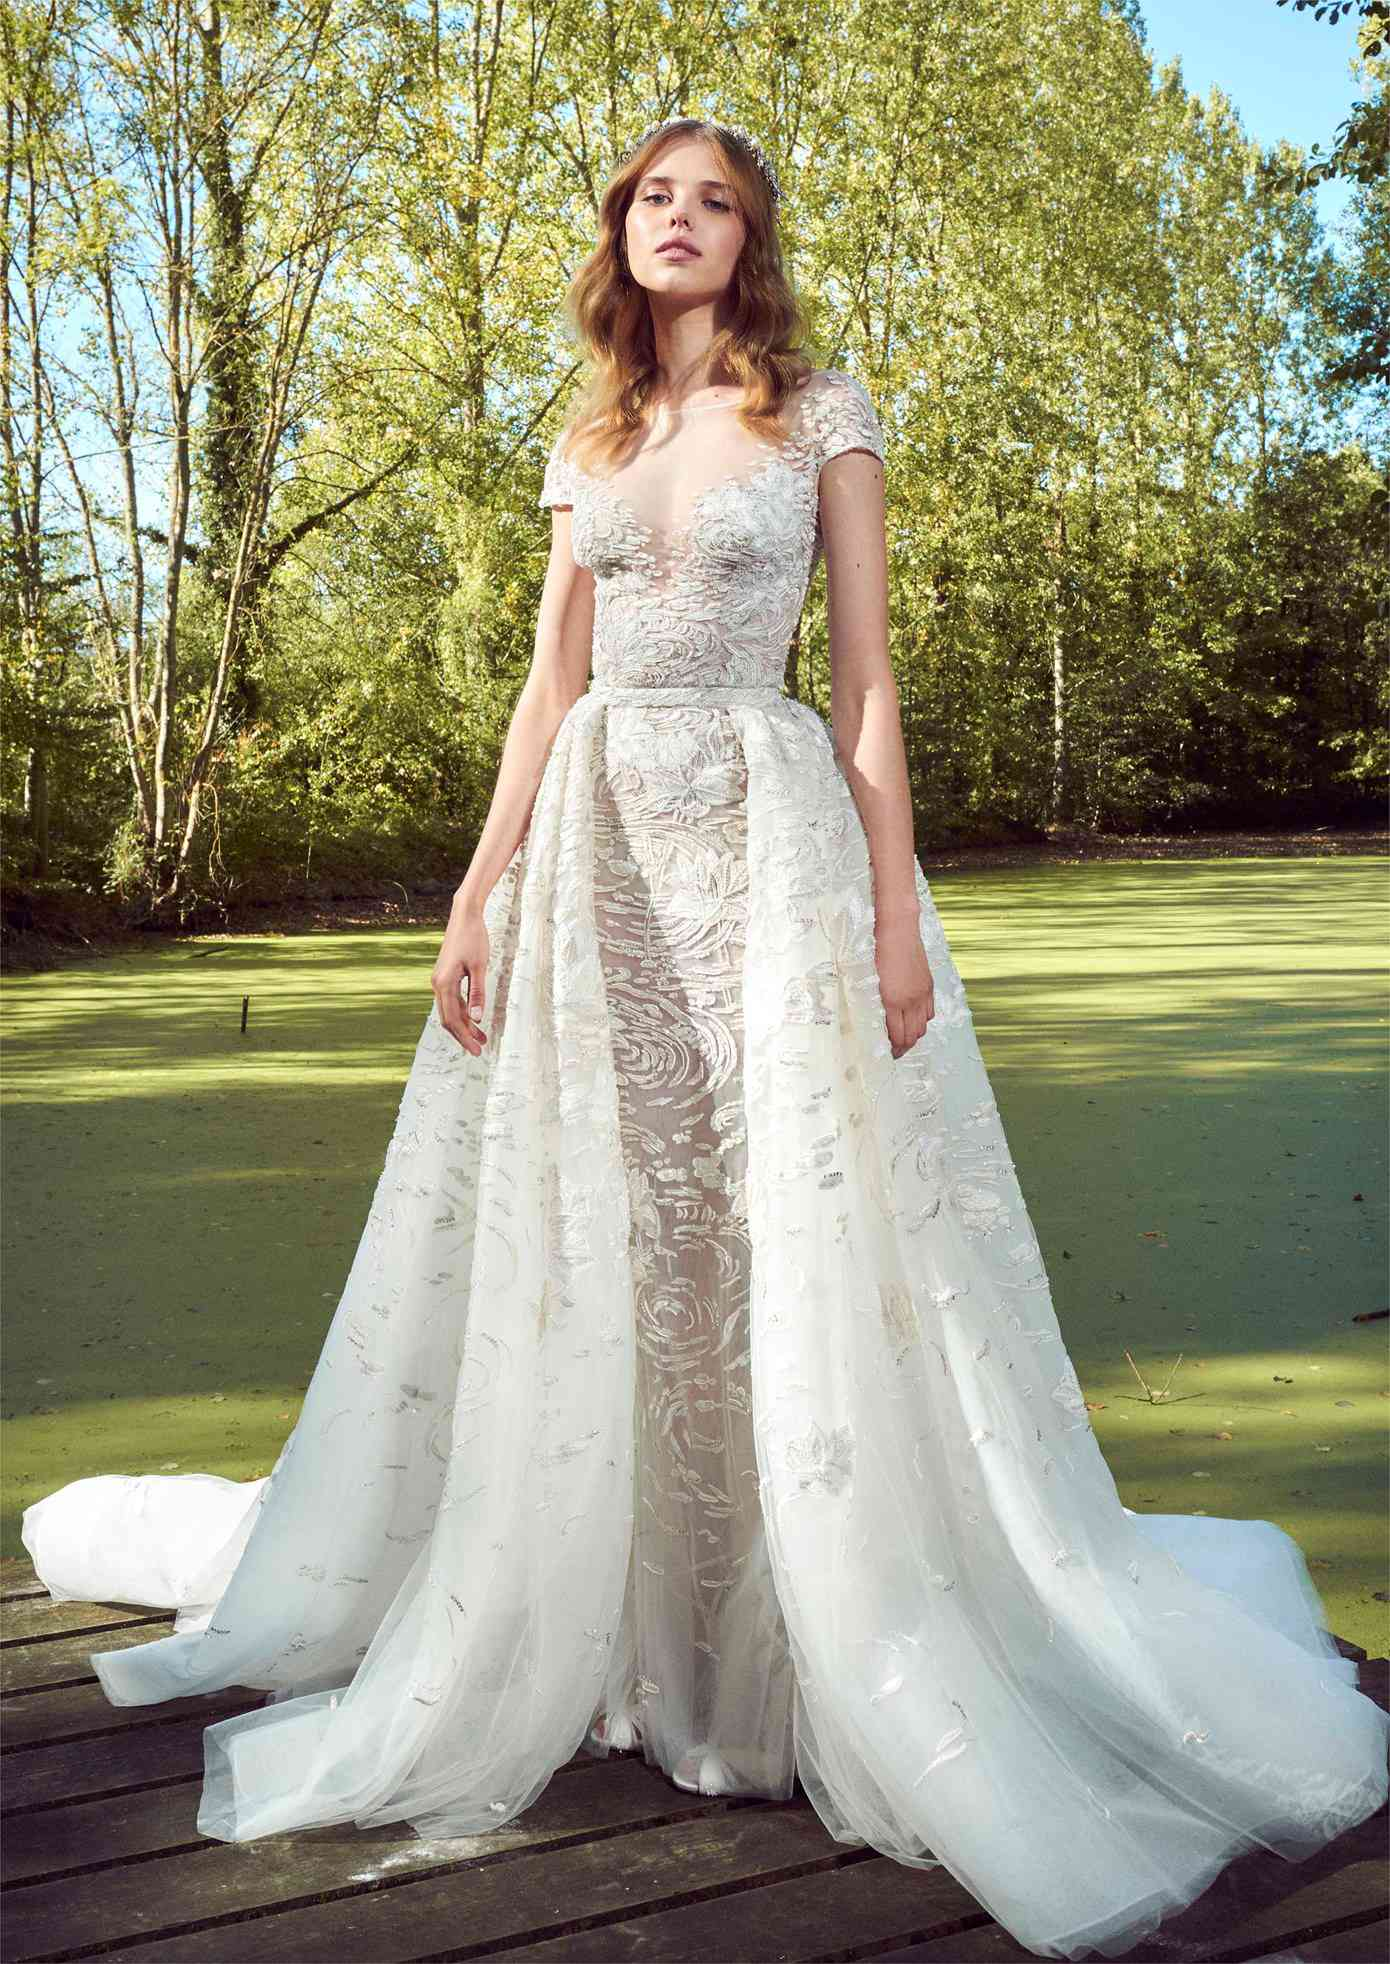 Model in a tulle sheath gown with cap sleeves, an illusion neckline, 3D beaded embroidery and a voluminous embroidered tulle overskirt